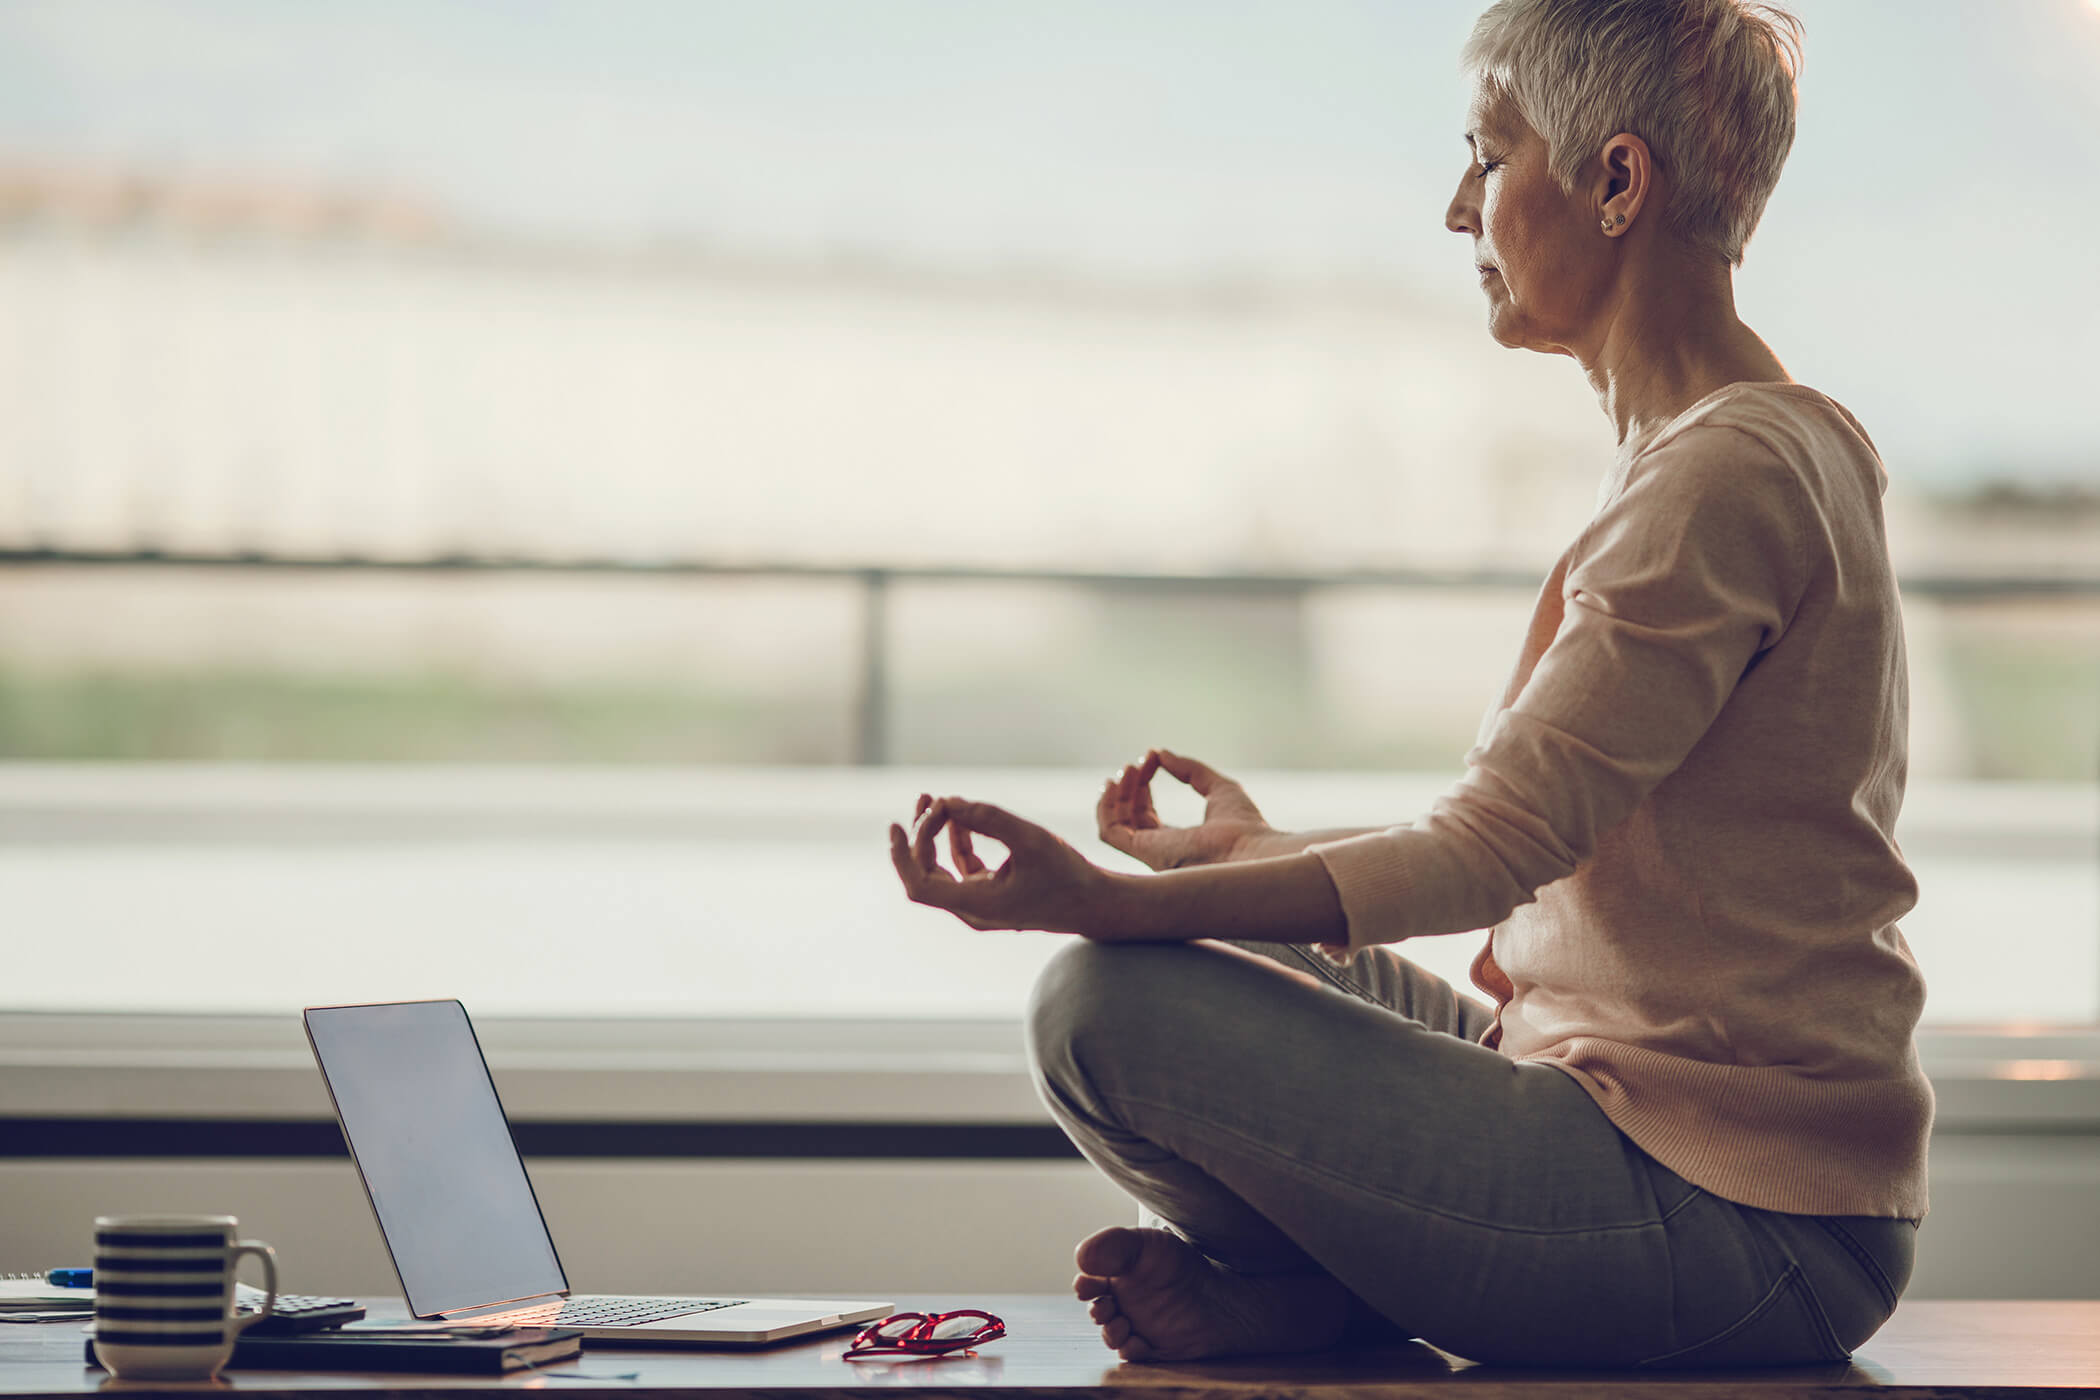 Woman doing yoga in front of her laptop, while online.